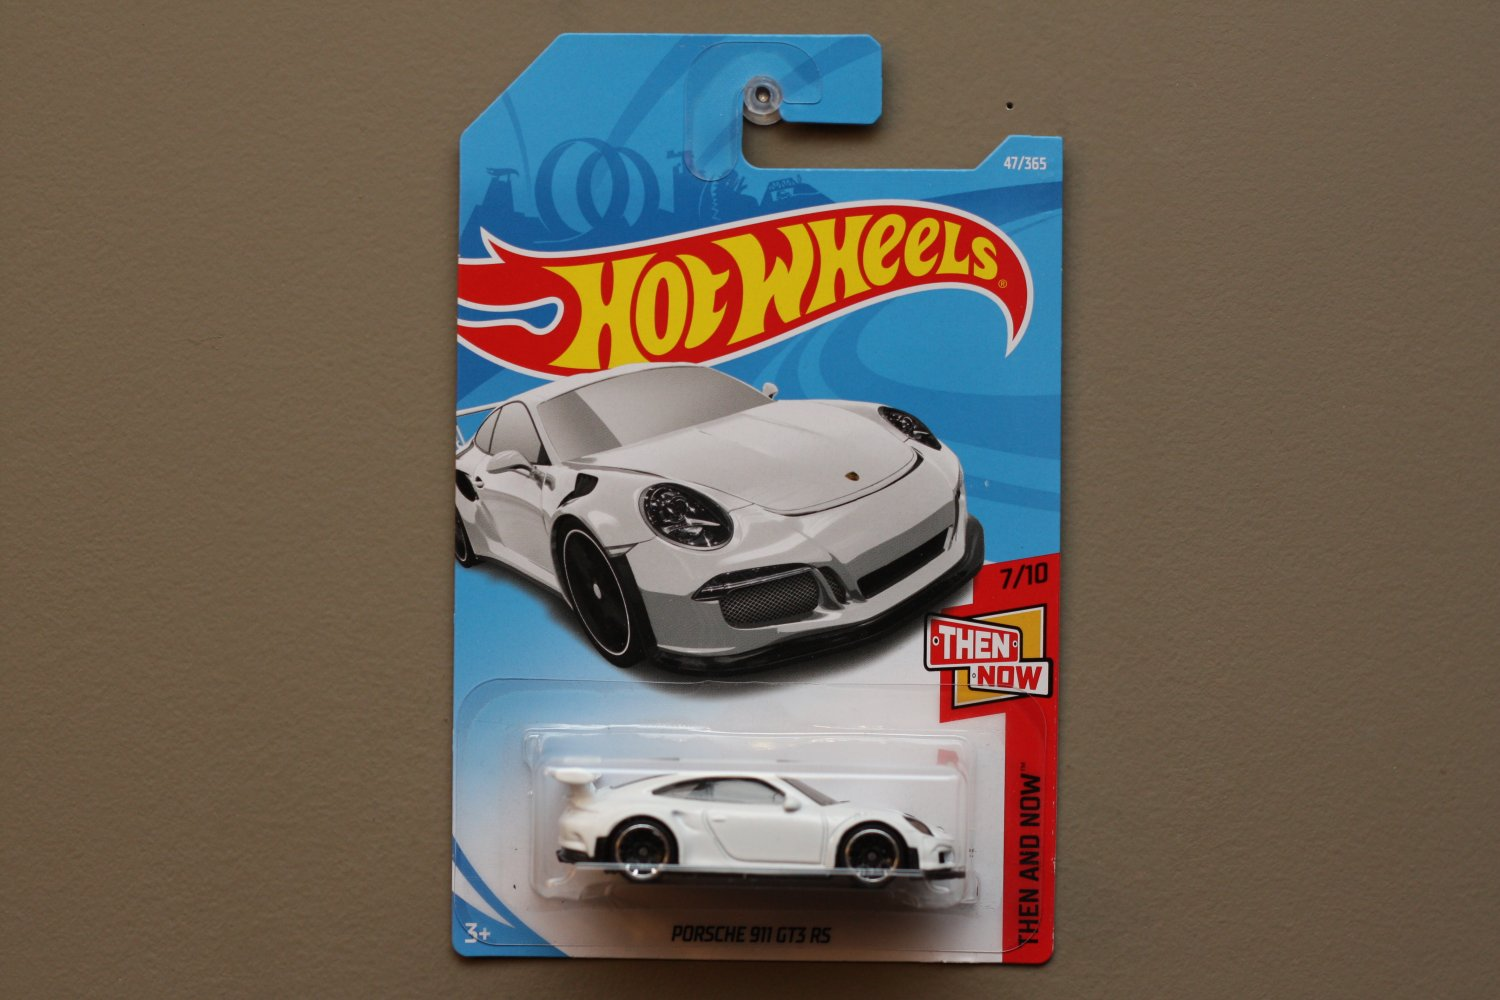 hot wheels 2018 then and now 39 16 porsche 911 gt3 rs white see condition. Black Bedroom Furniture Sets. Home Design Ideas